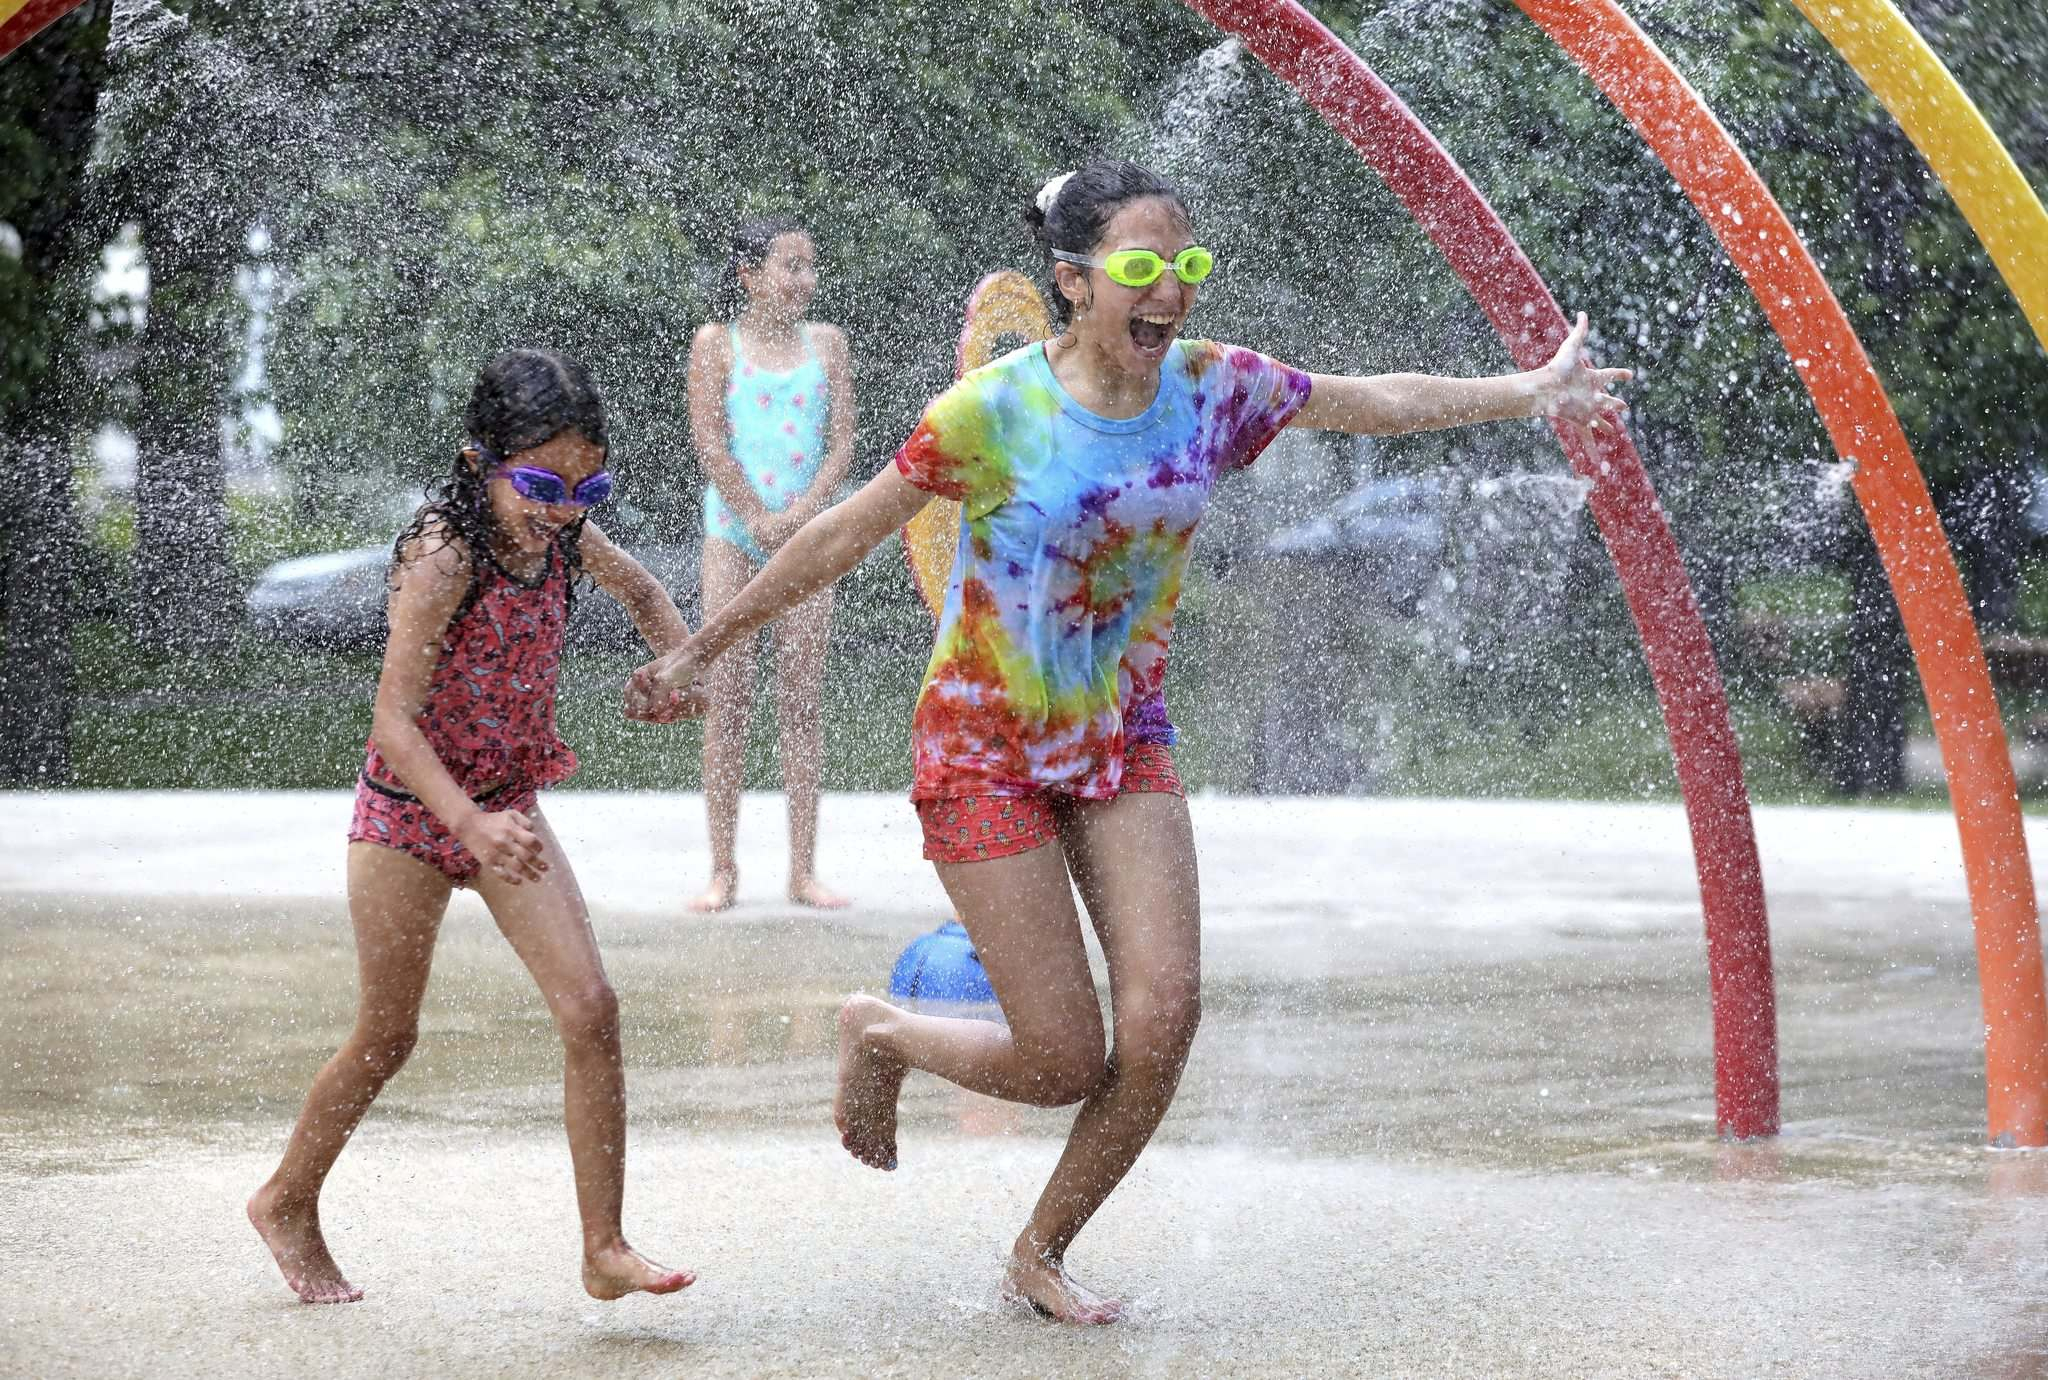 Sisters Maylis, 12, and Melanie, 7, enjoy cooling themselves at Provencher Park Spray Pad Monday.